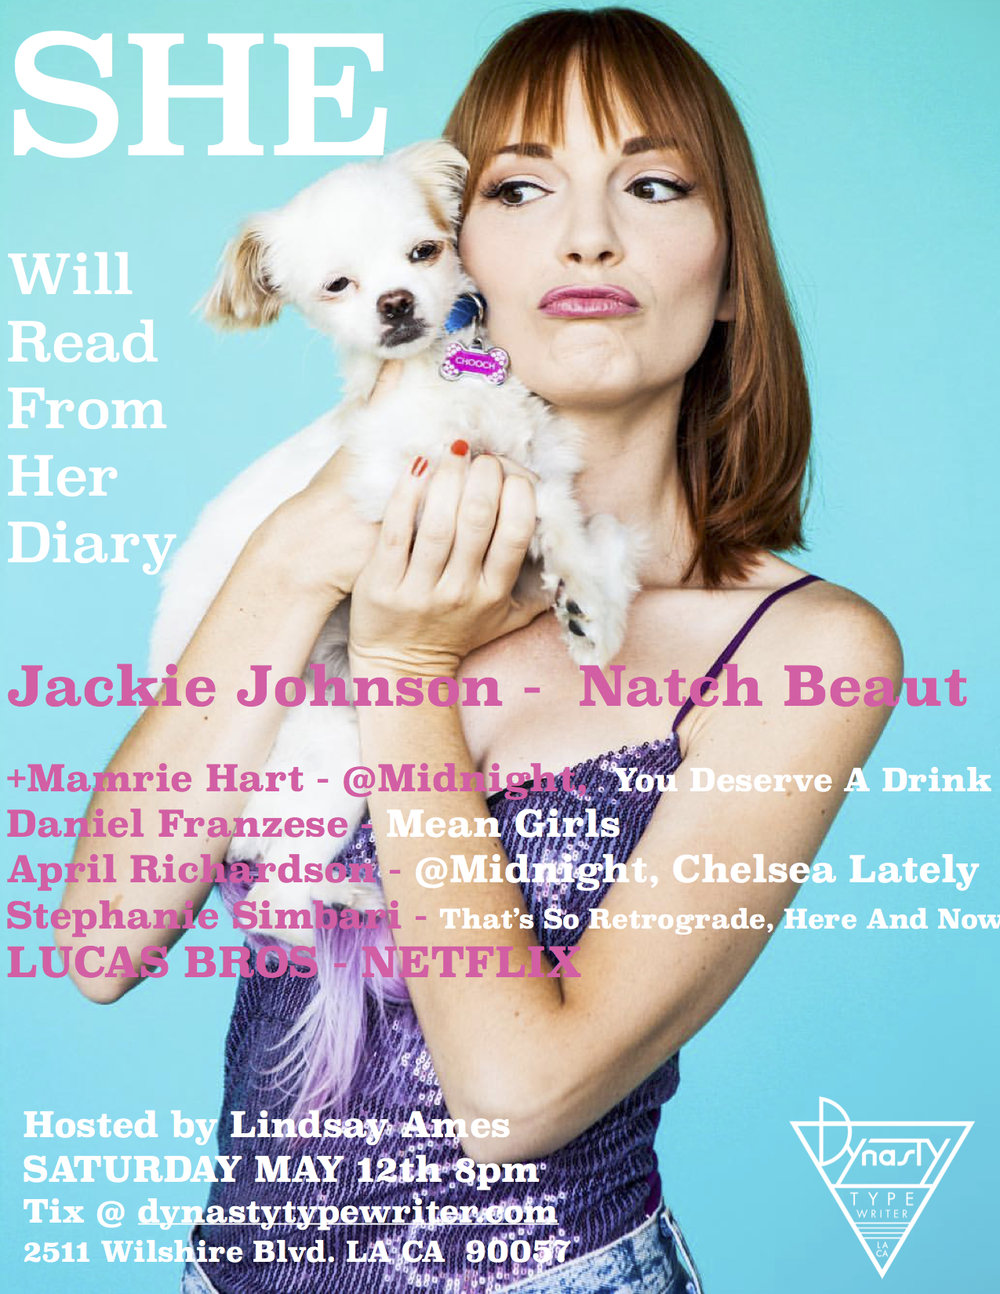 Jackie's Live shows coming up in LA! - My Diary May 12th at 8pm at Dynasty Typewriter